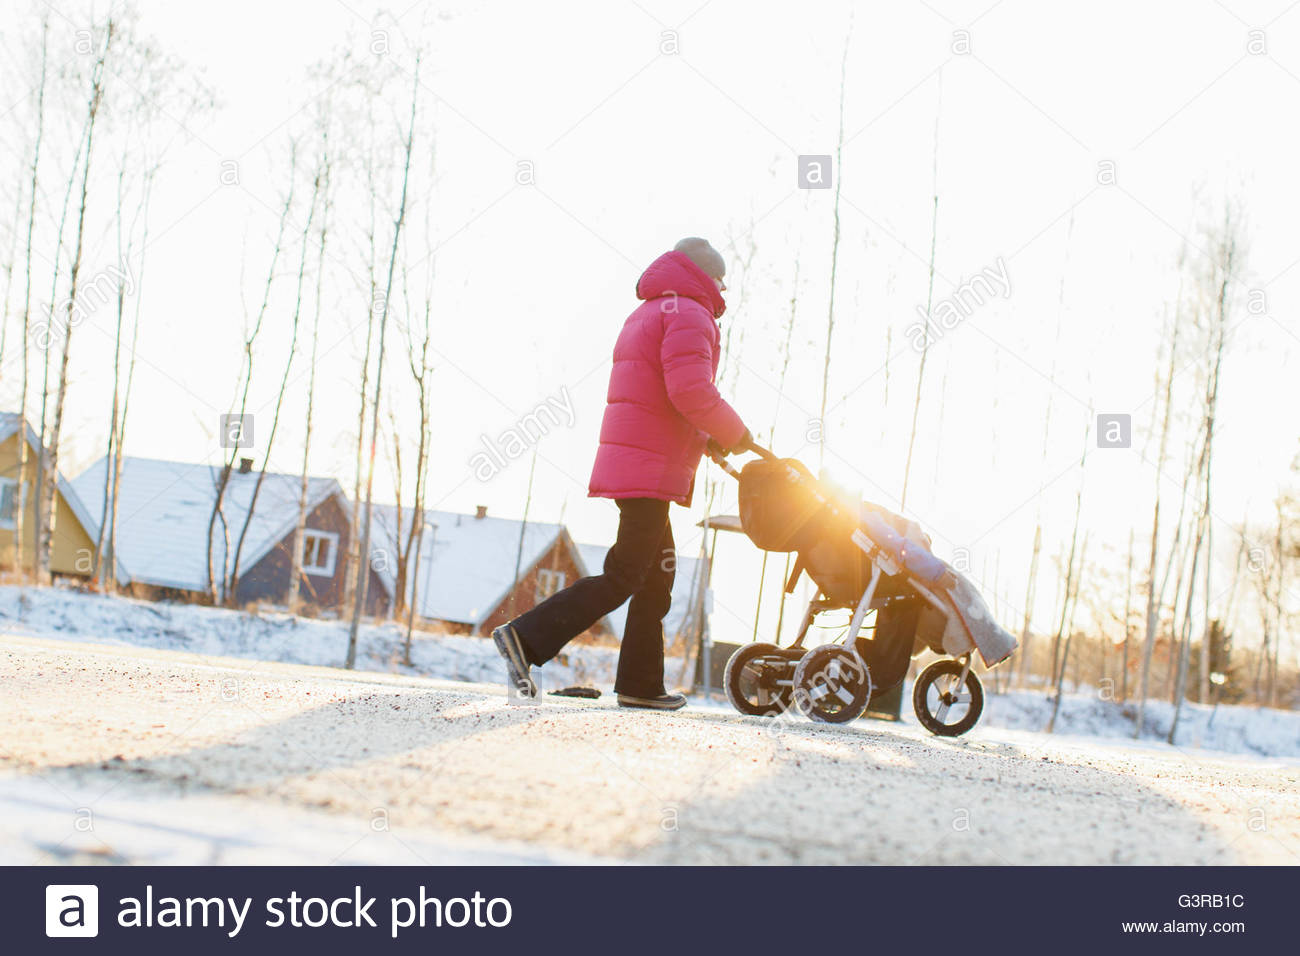 Sweden, Sodermanland, Jarna, Mother pushing boy (2-3) in stroller - Stock Image